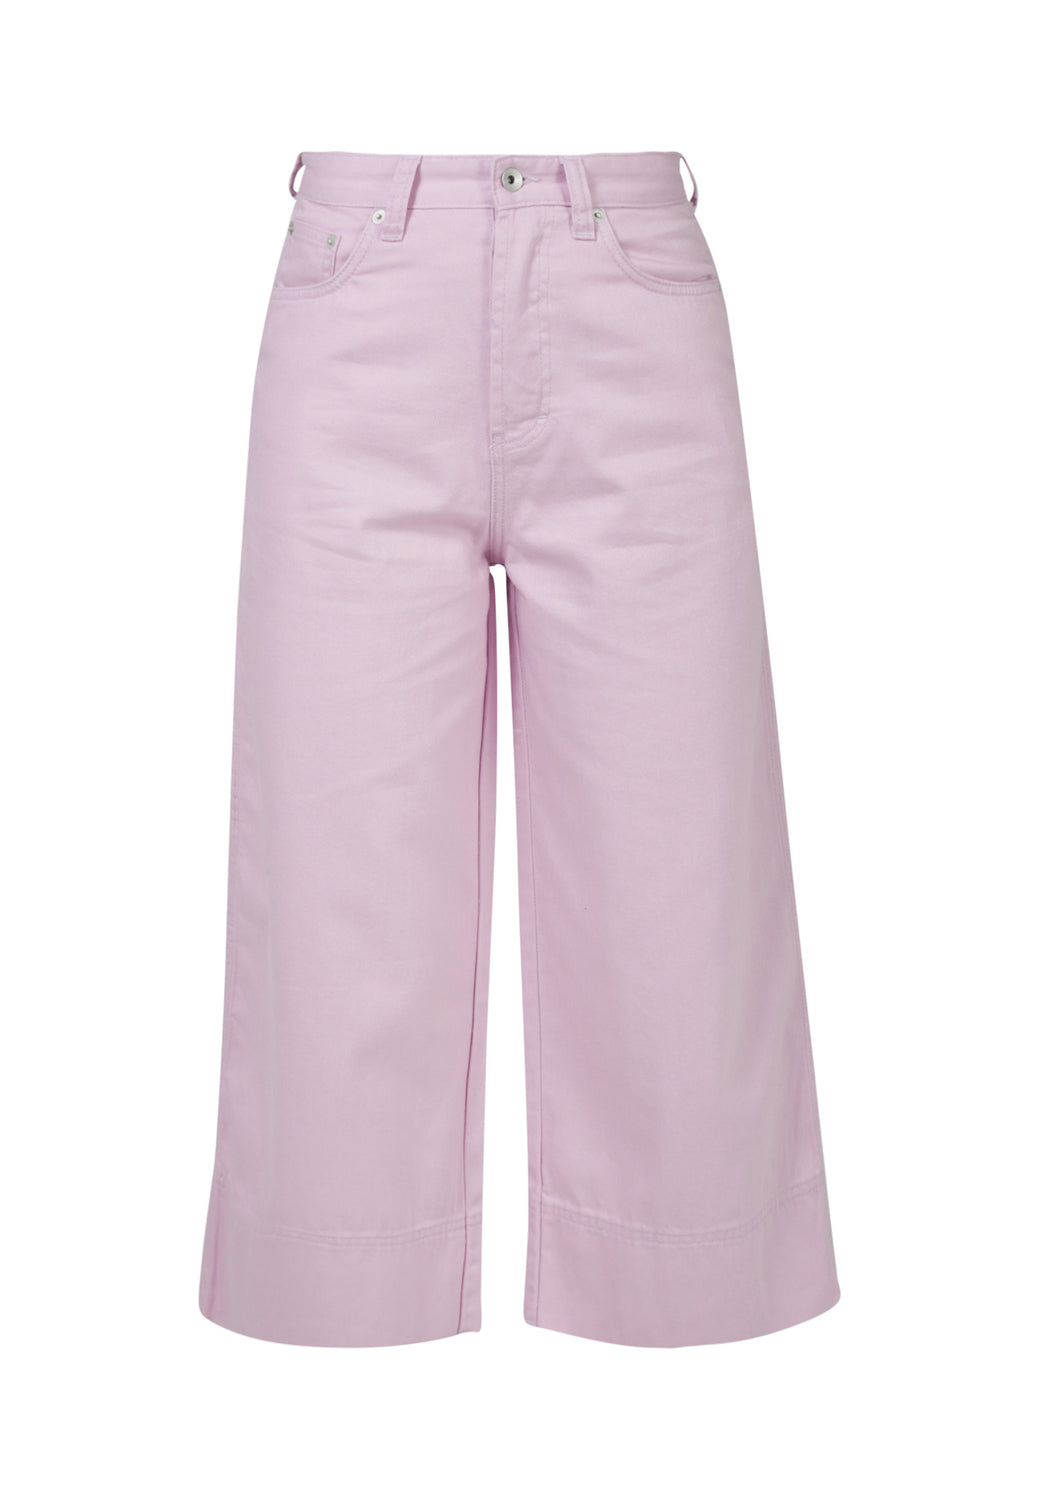 WIDE LEG // Organic Cropped Wide Leg Jeans in Pink - Monkee Genes Organic Jeans Denim - Women's Cropped Monkee Genes Official  Monkee Genes Official